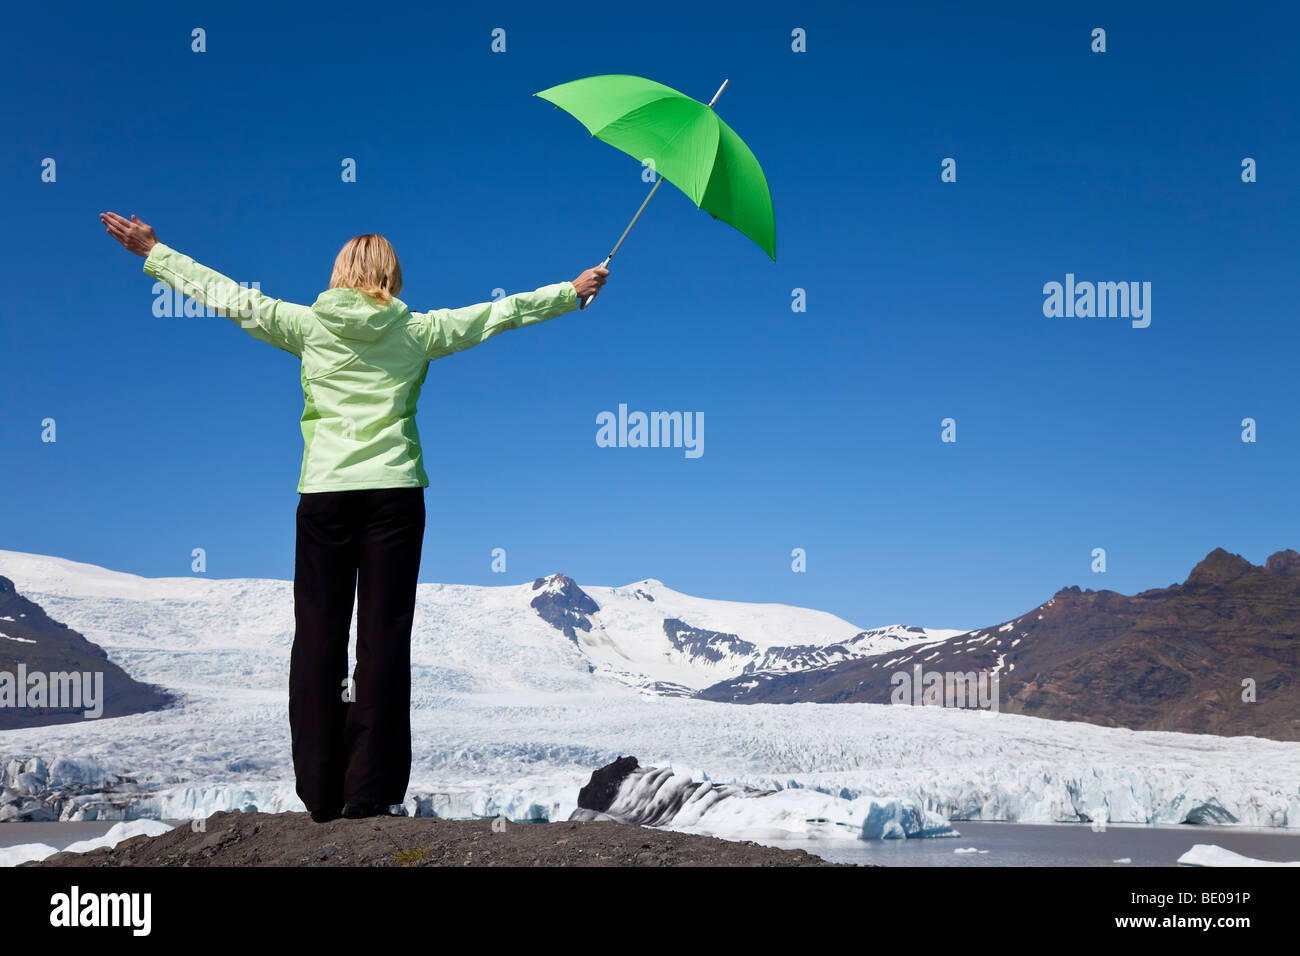 Environmental concept shot of a woman dressed in green with a green umbrella standing arms outstretched in front - Stock Image